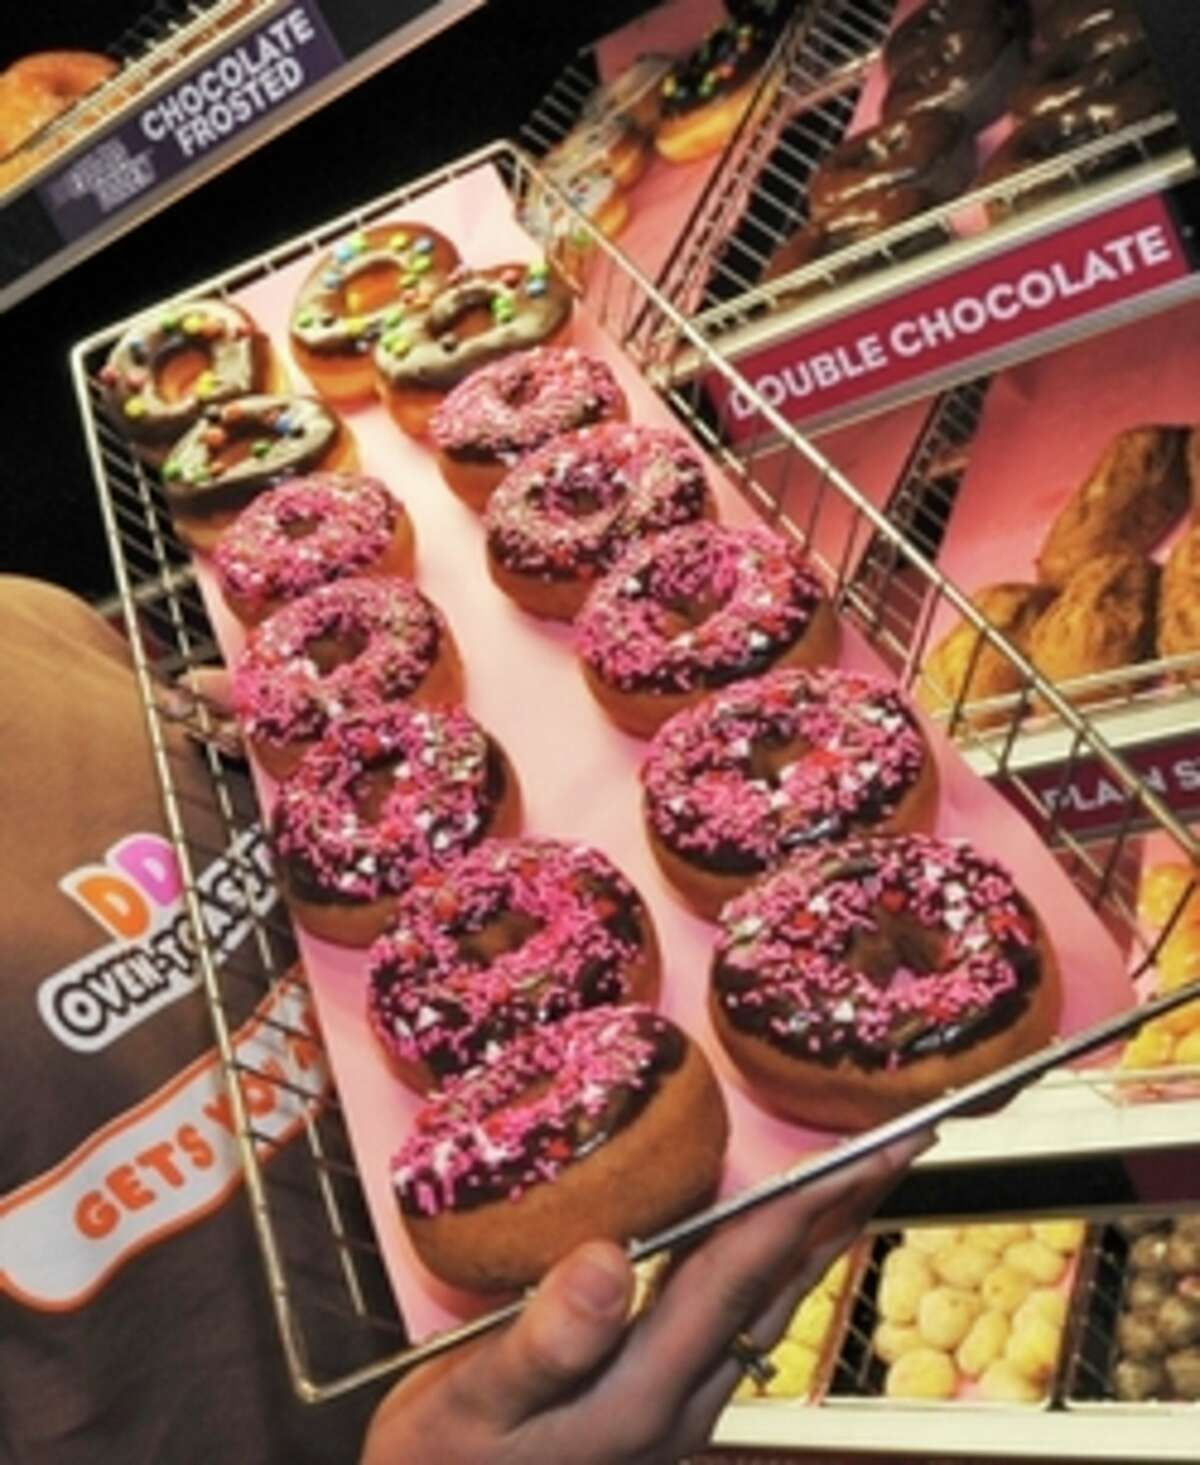 FILE - In this Feb. 12, 2008 file photo, a rack of donuts is displayed at a Dunkin' Donuts franchise in Boston. Consumers wondering what food without trans fat will taste like, probably already know as food manufacturers began eliminating it years ago. (AP Photo/Lisa Poole, File)